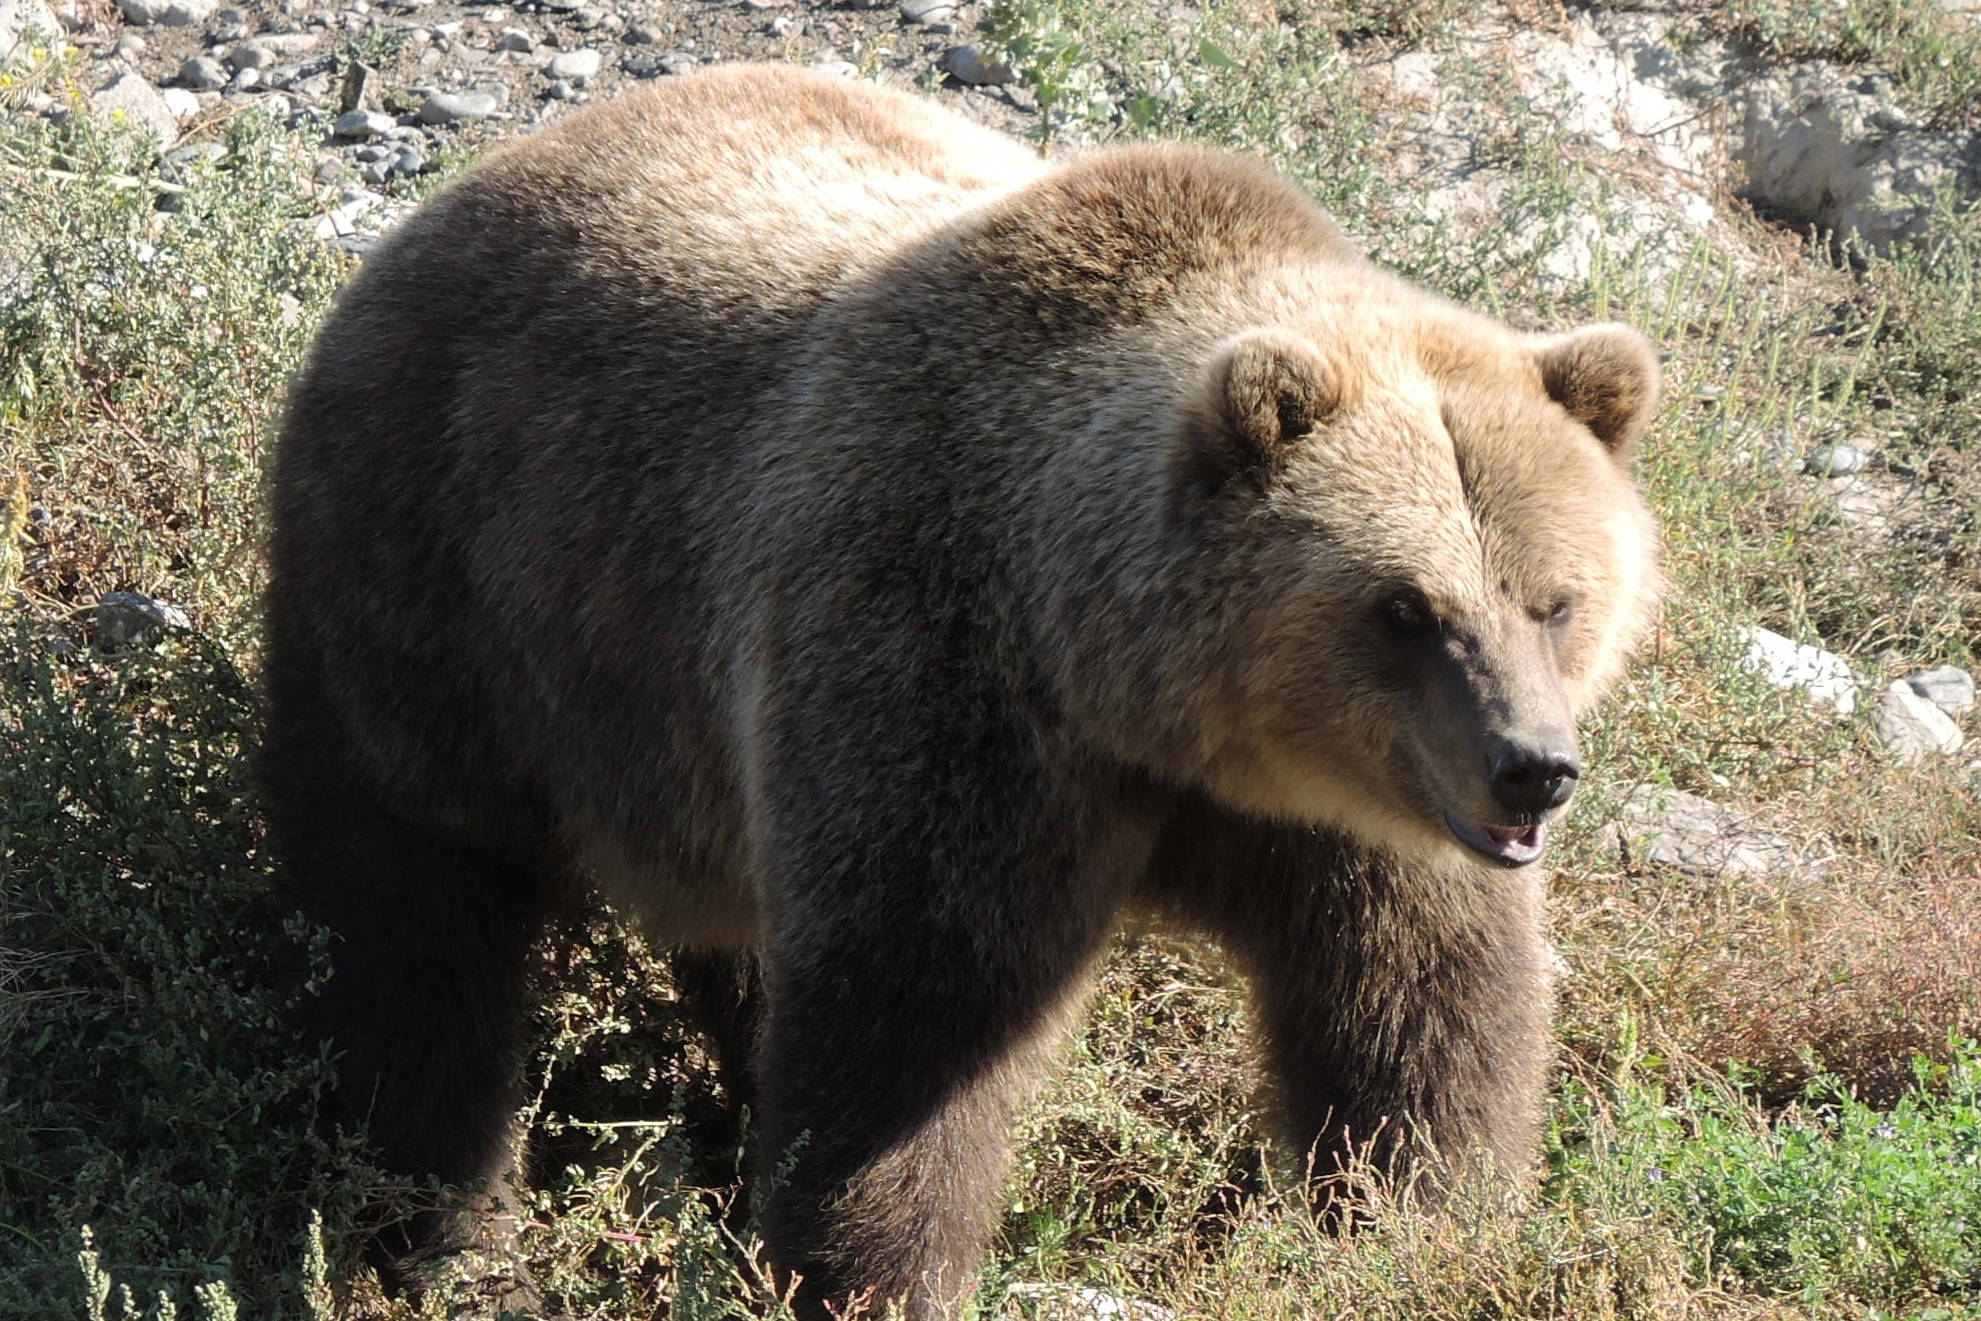 Grizzly bears, like the one shown in this file photo, are causing problems for local farmers. But conservation officers say local farmers have to do more to prevent harmful interactions.                                (File photo)